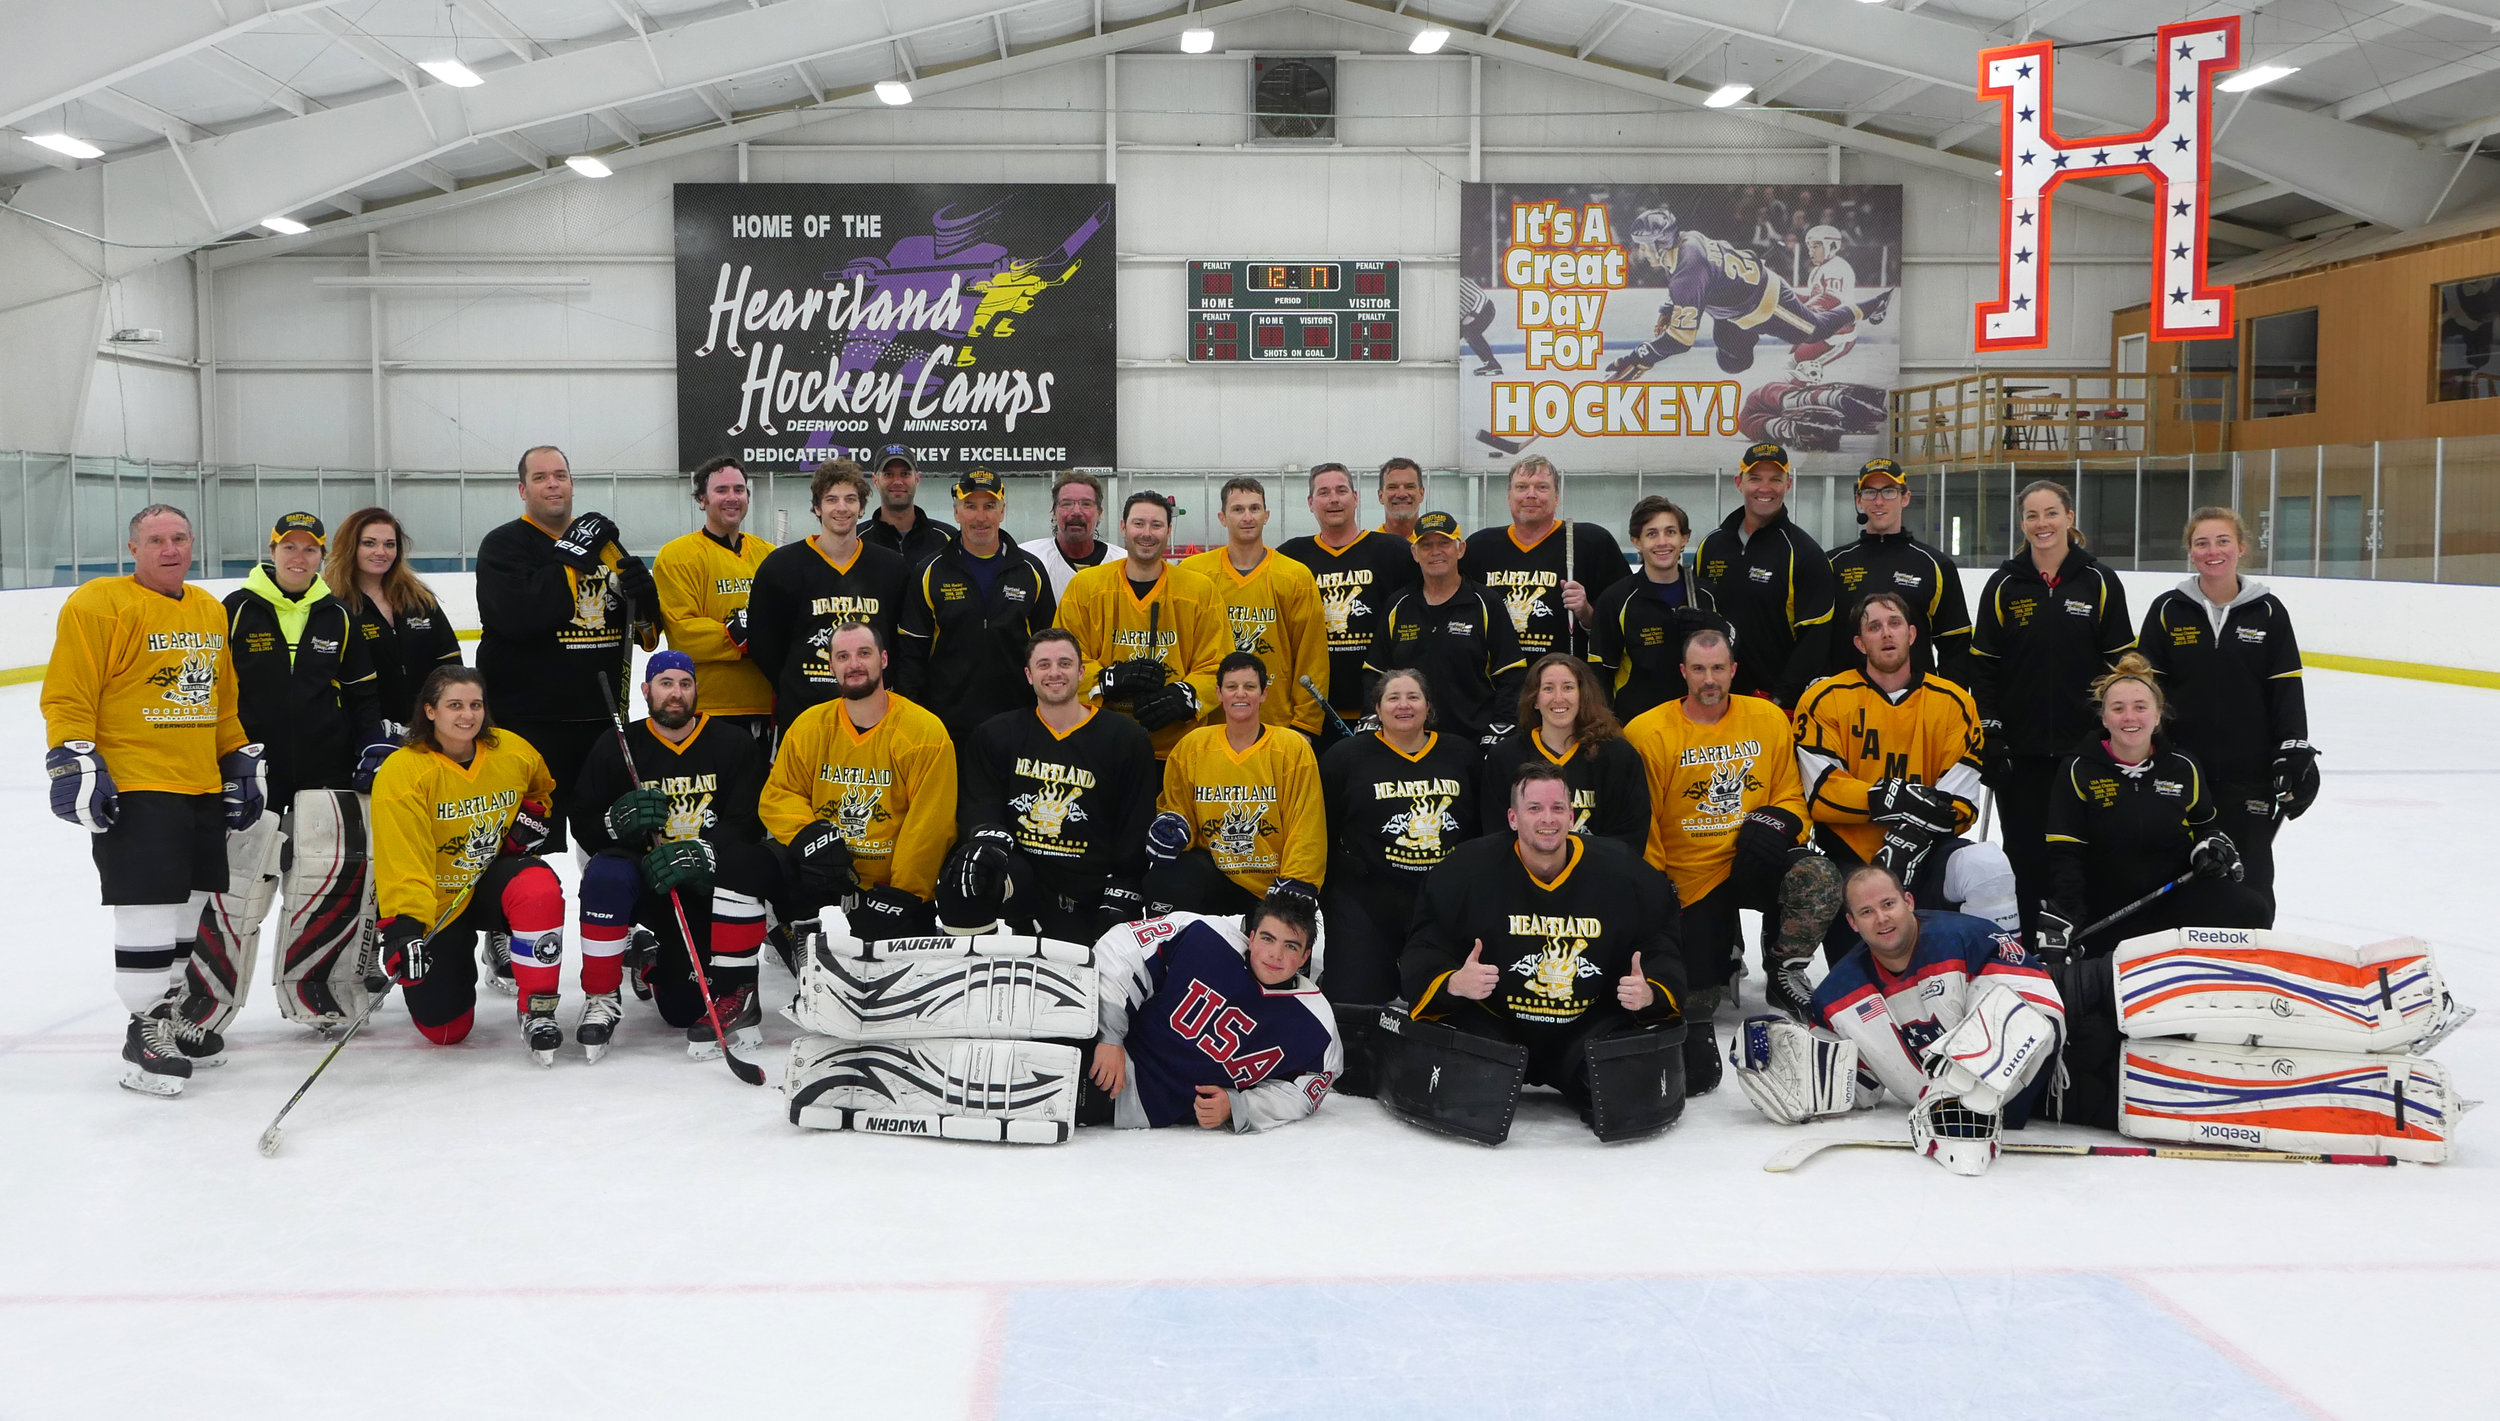 Hockey Camps for Youth and Adults | Heartland Hockey Camp